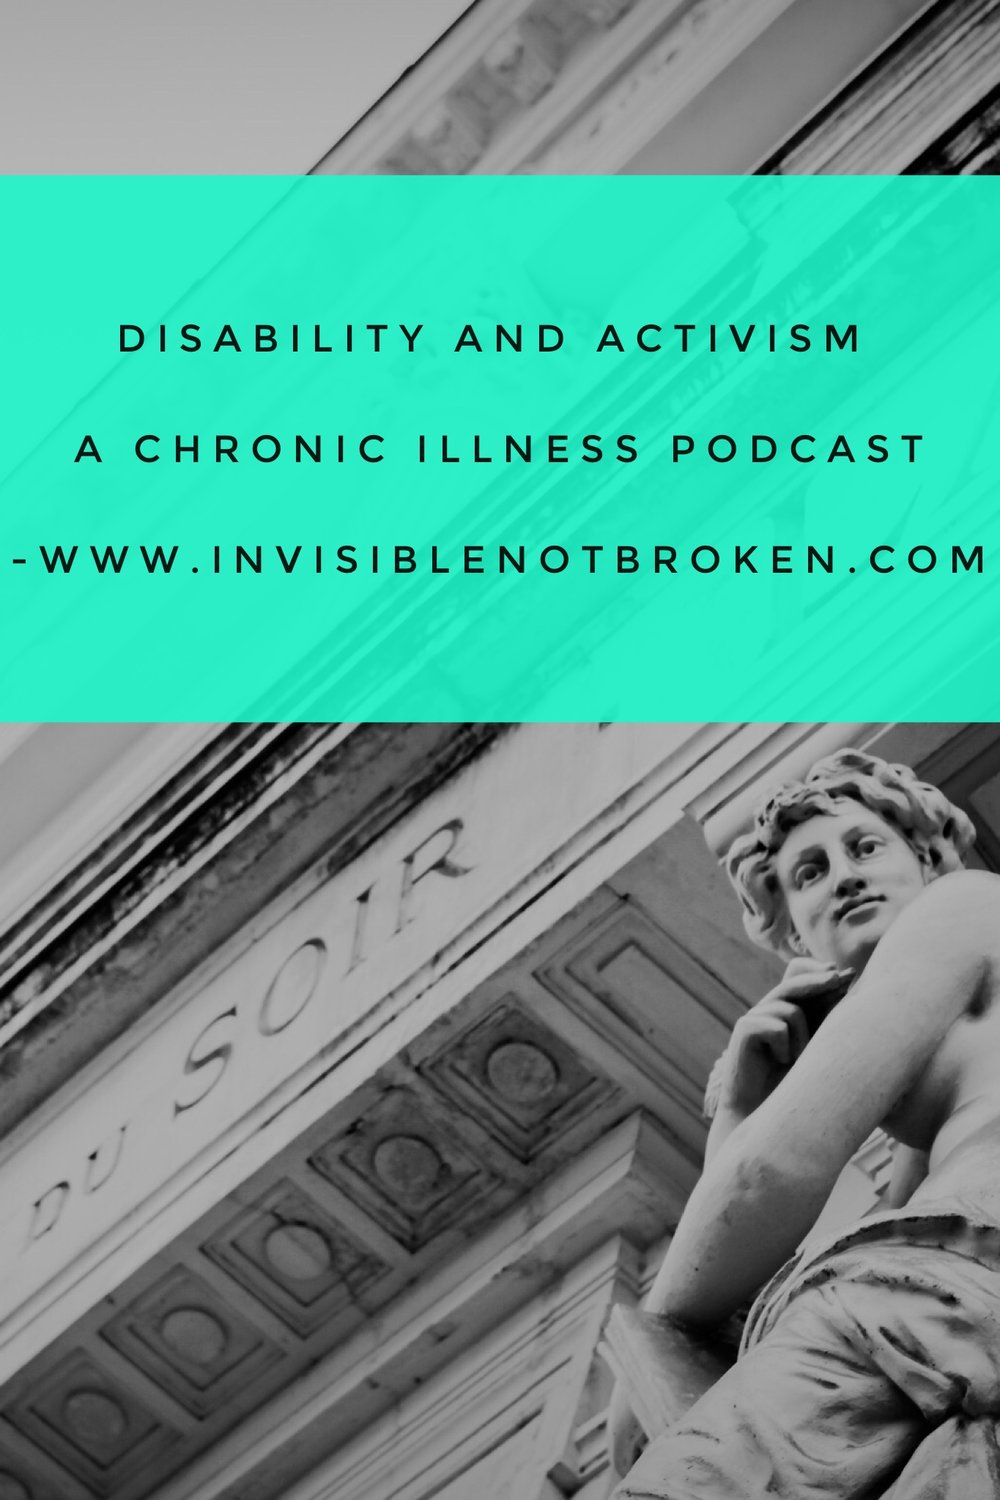 Disability-and-activism-Chronic-Illness-Podcast.jpg